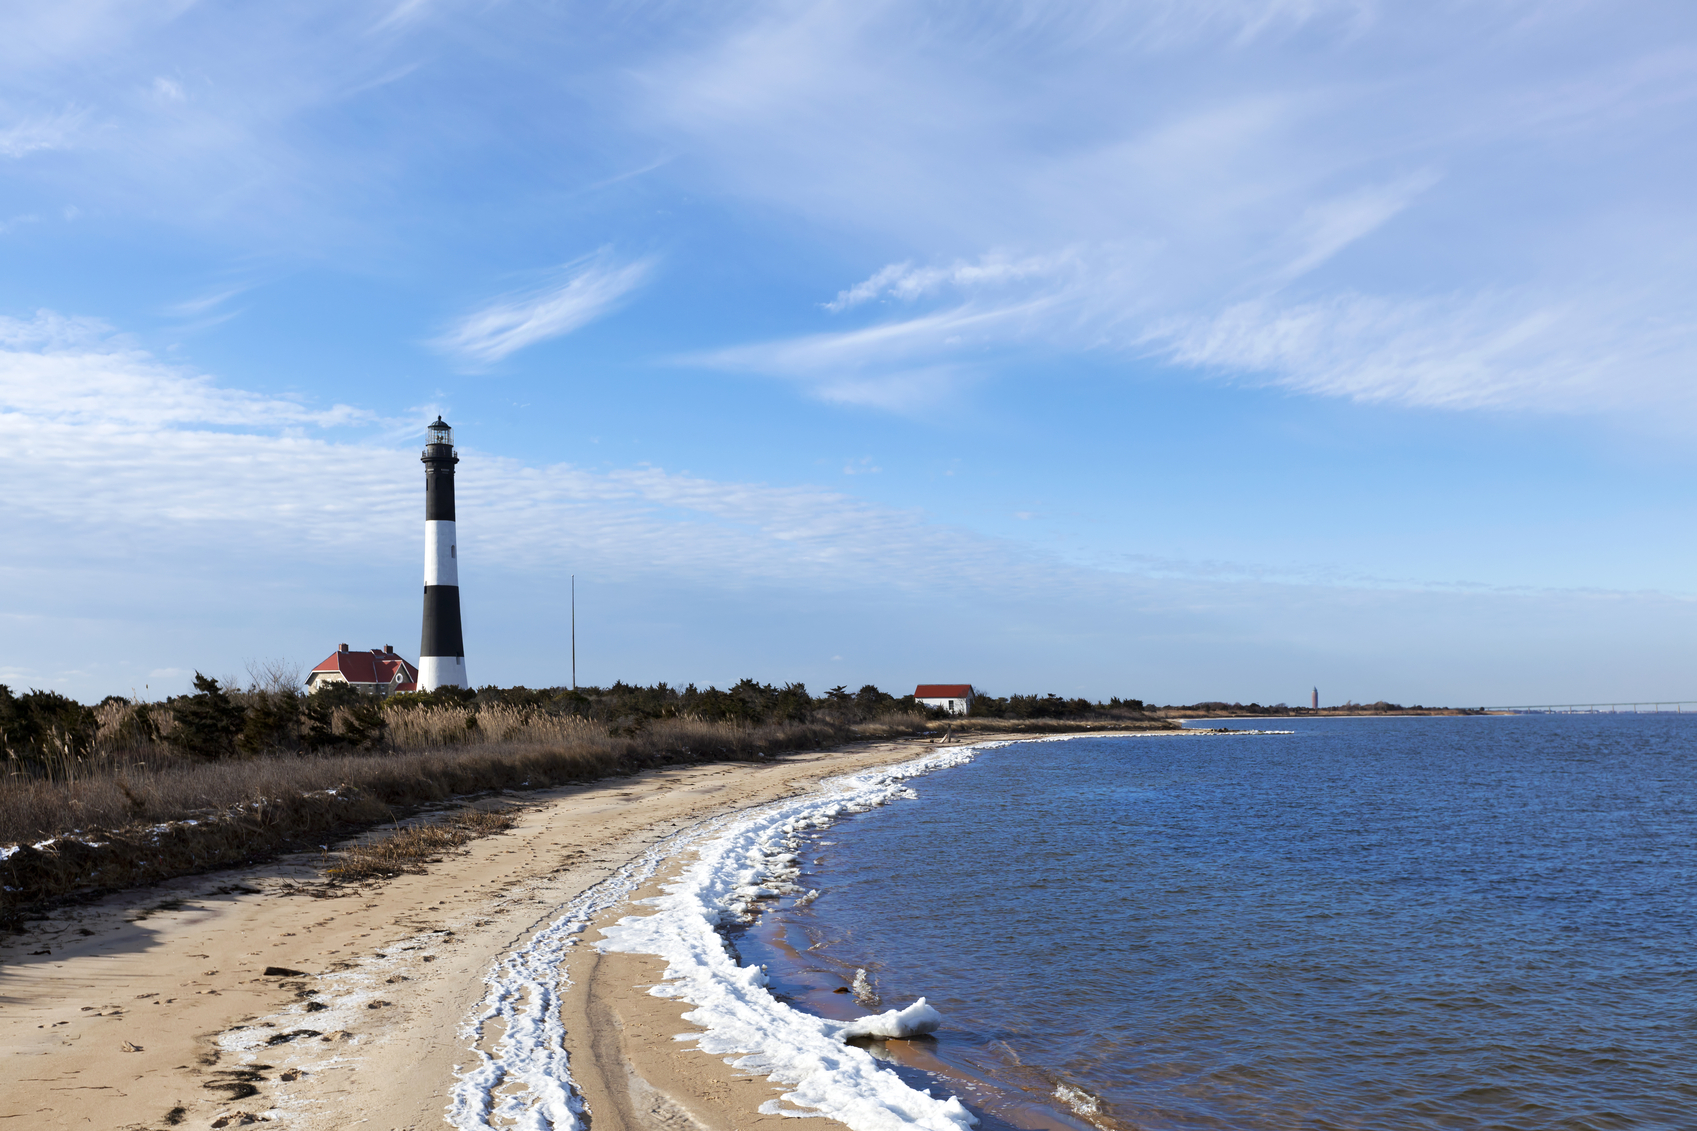 Fire Island Lighthouse from the Great South Bay side. In the winter